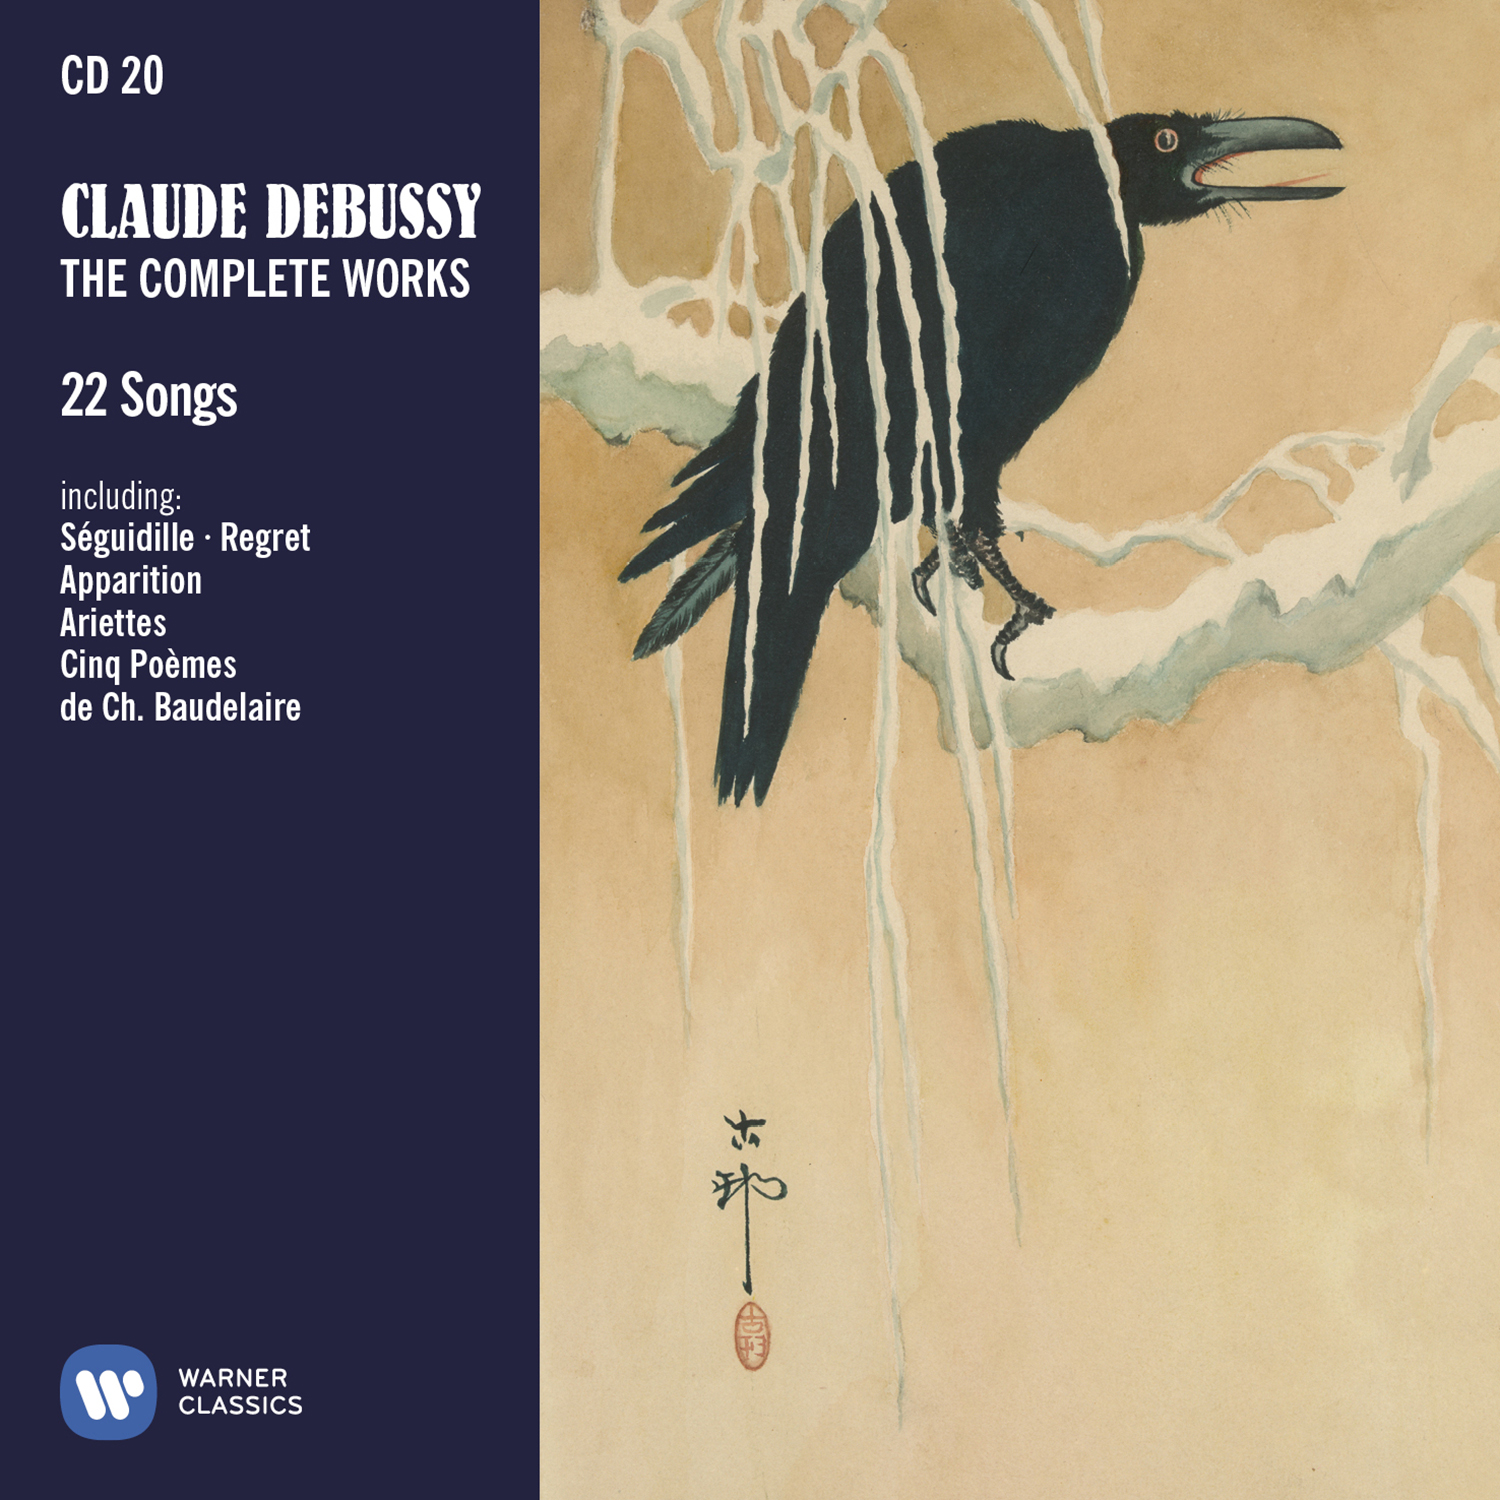 Debussy The complete works - Cover wallet CD20.jpg